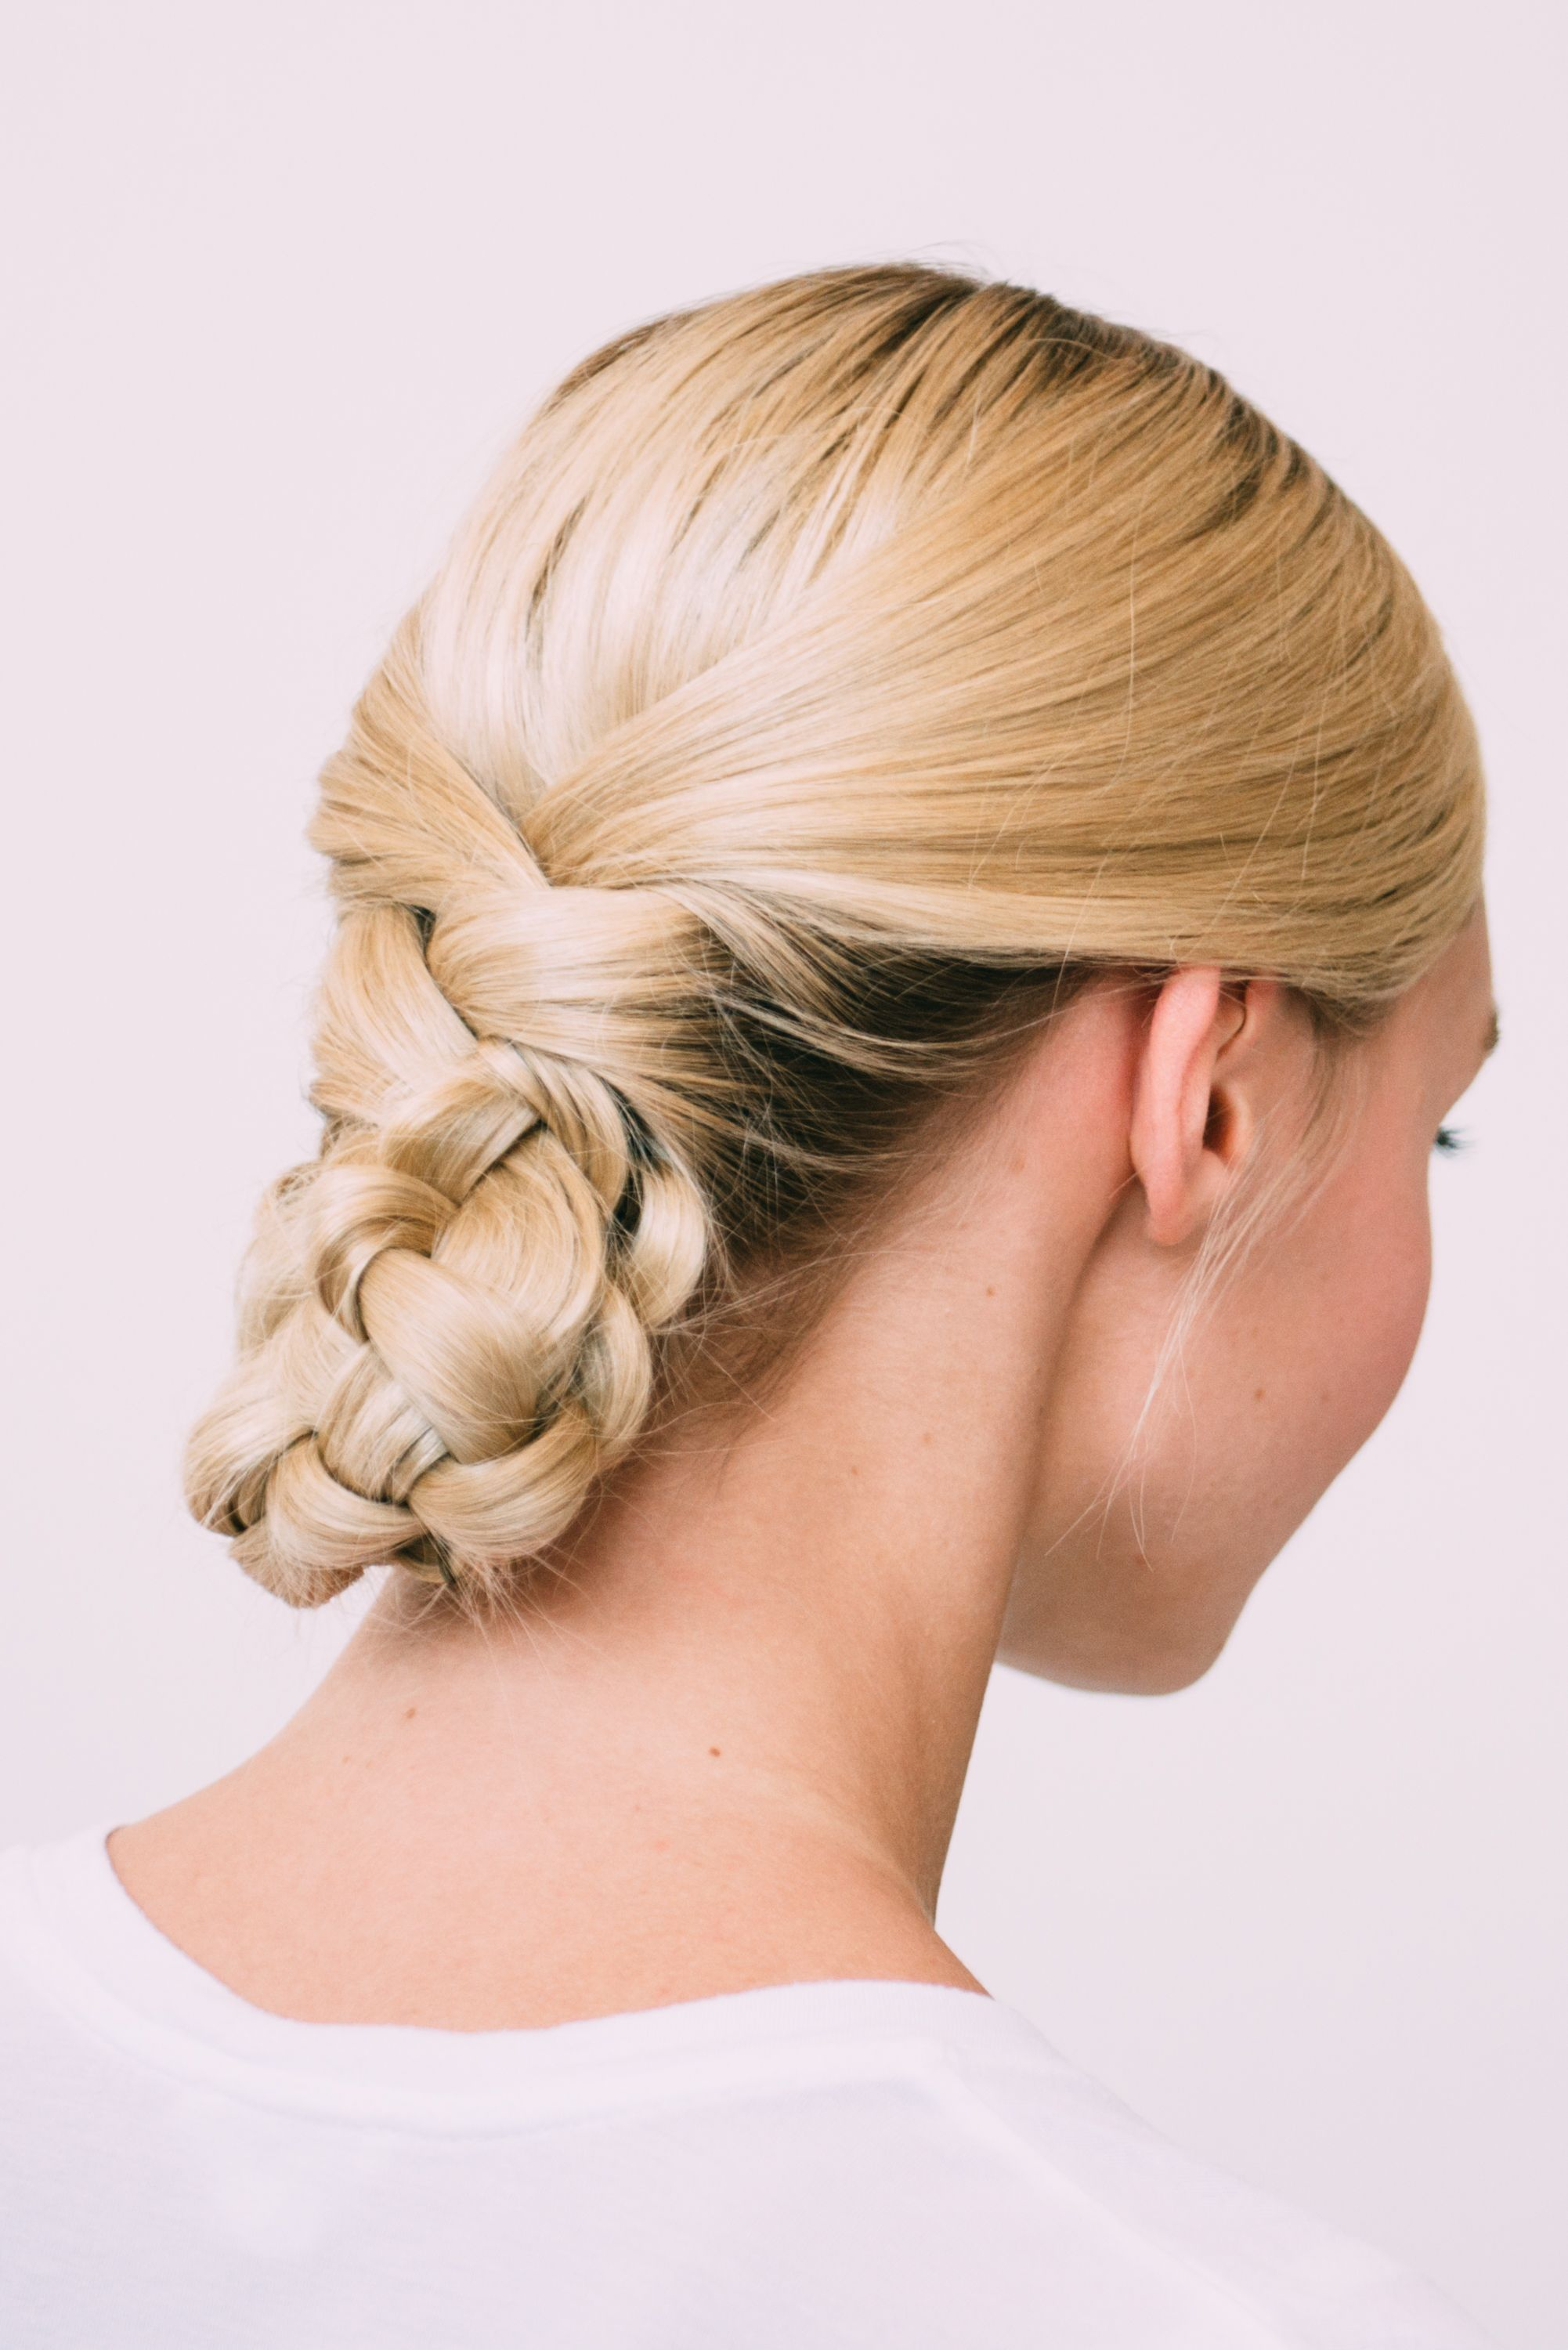 25 Braids for Your Wedding Day - Best Braided Wedding Hairstyles for ...